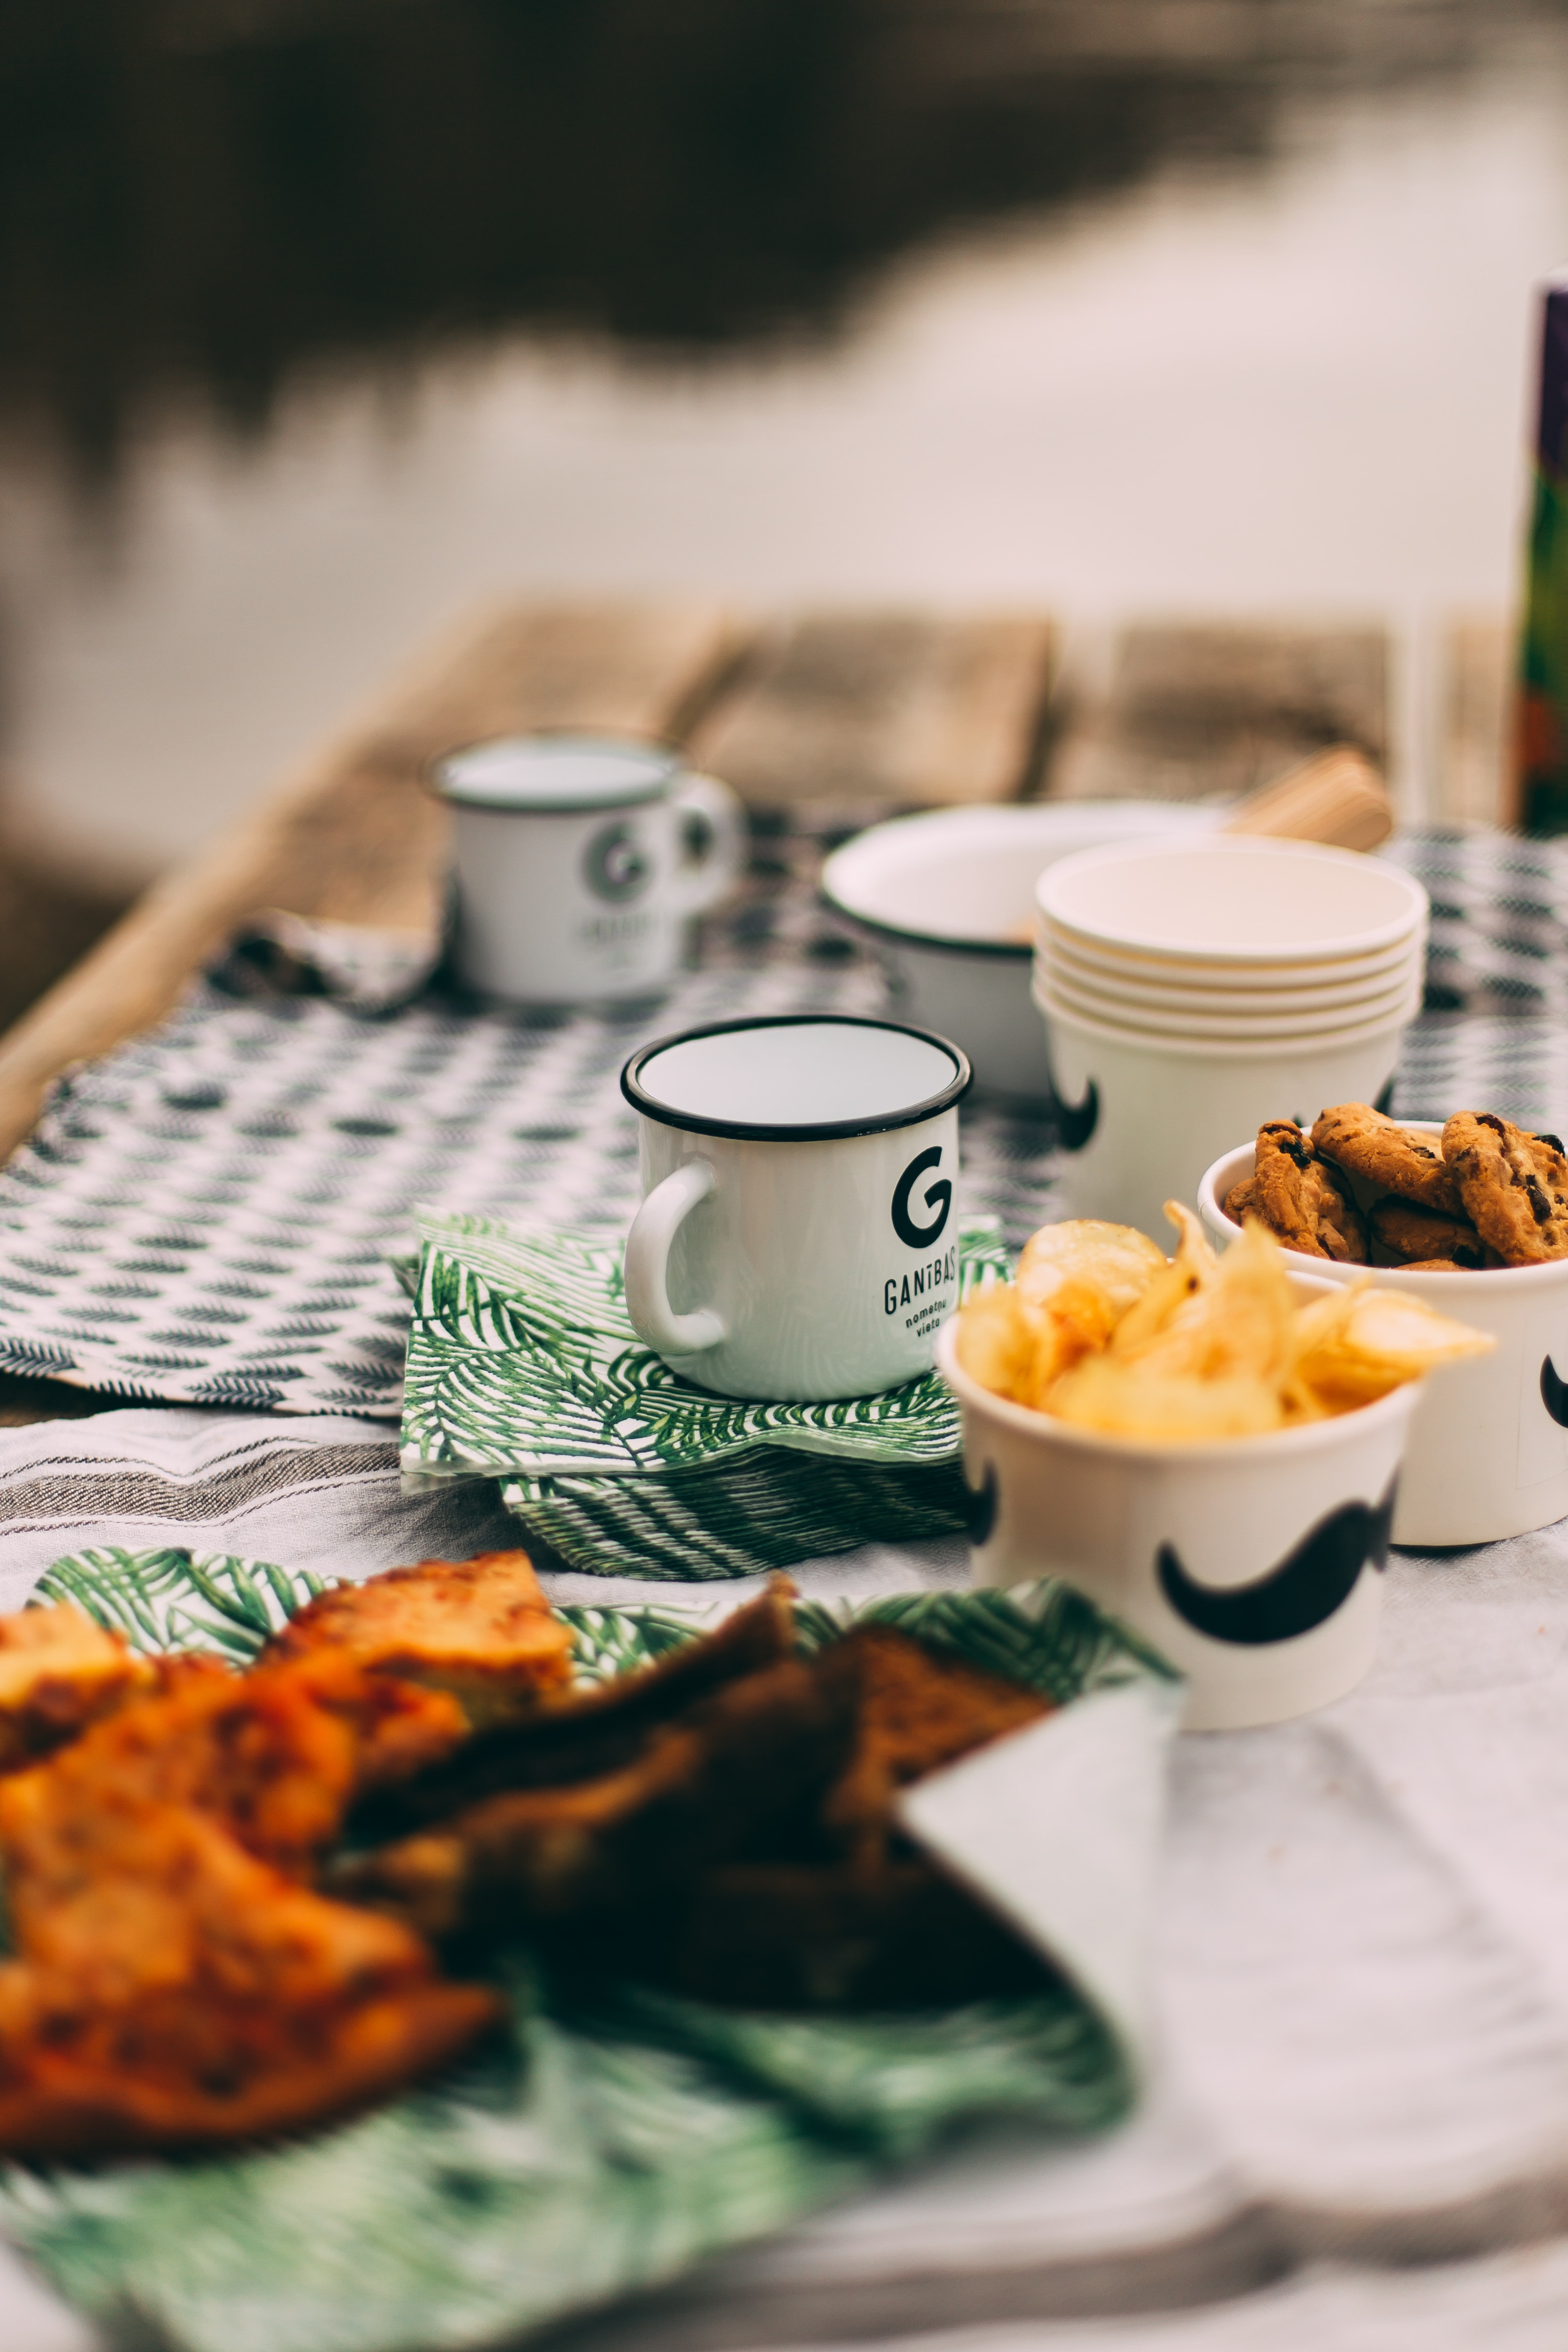 enamel-coated mugs and plastic cups on table selective focus photography